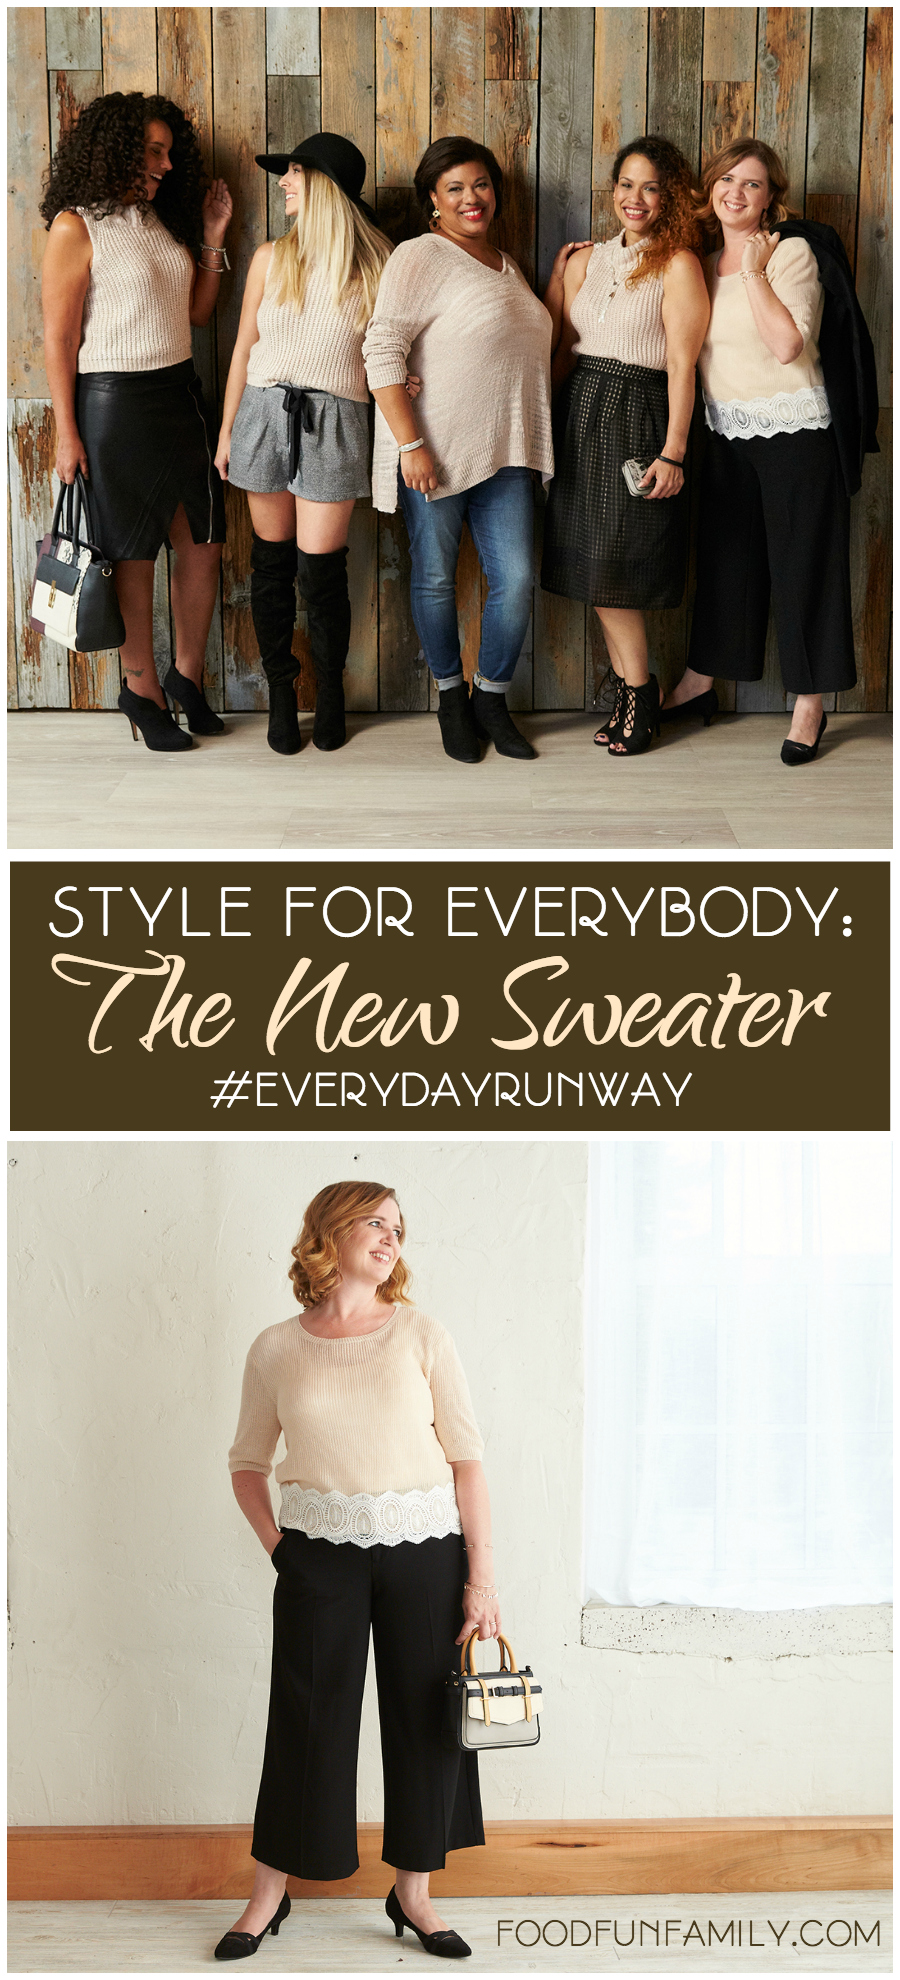 Style for Everybody: The New Sweater #EverydayRunway